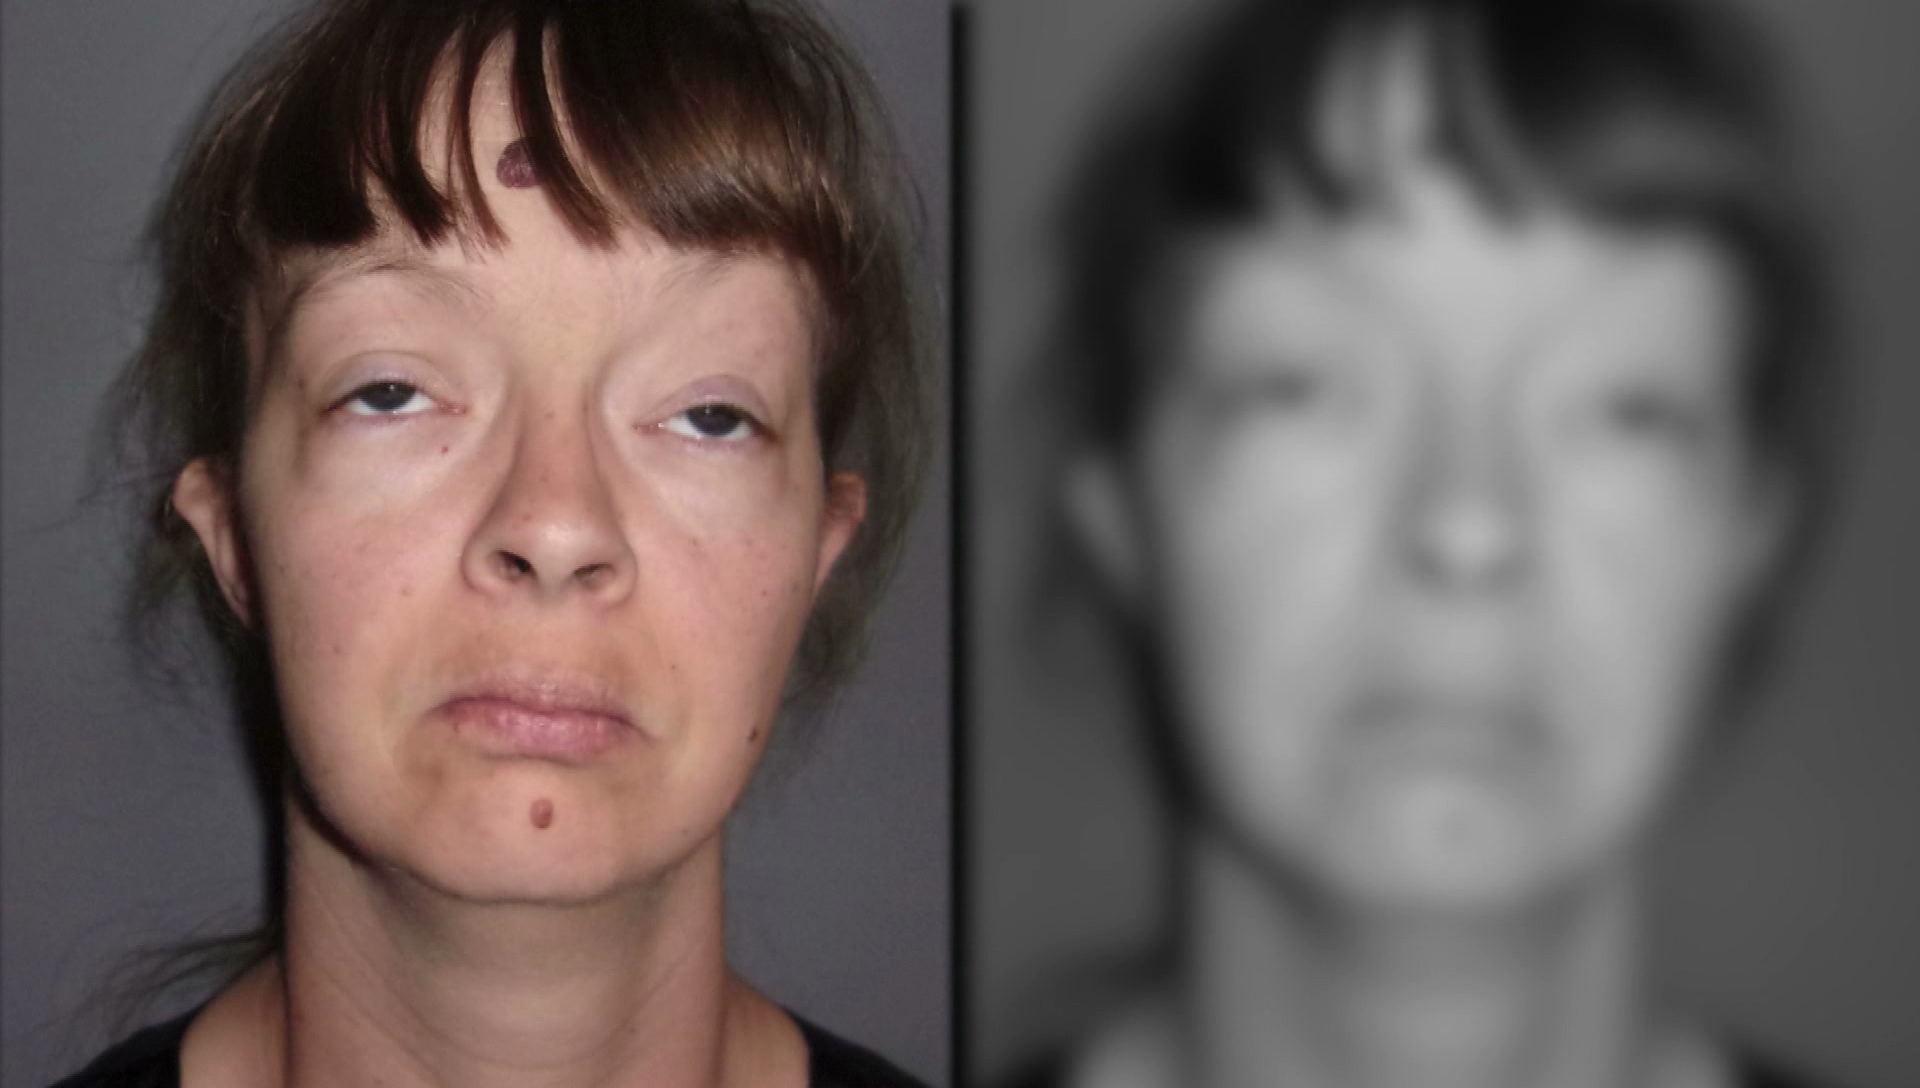 Oklahoma Mother Accused Of Starving Her Children, Making Them Eat Dog Feces thumbnail